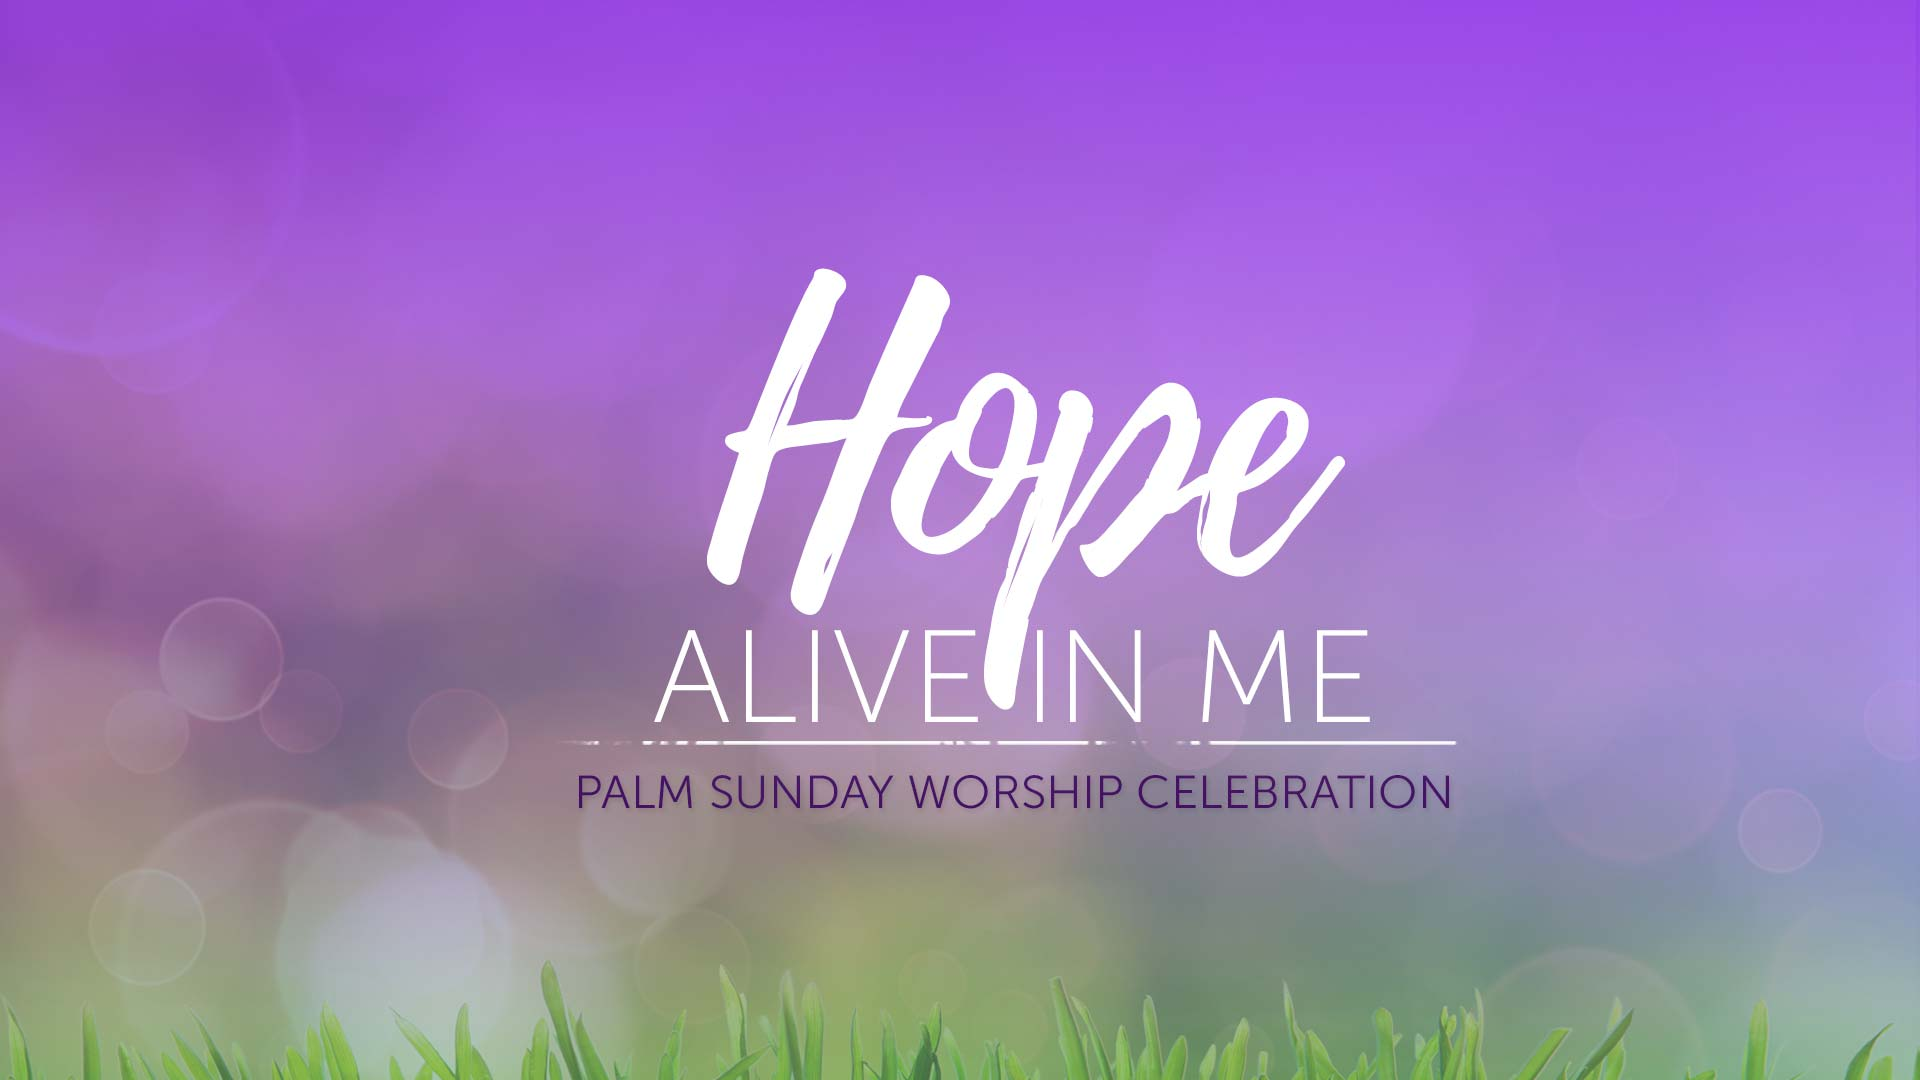 Hope Alive in Me - Palm Sunday Worship Celebration